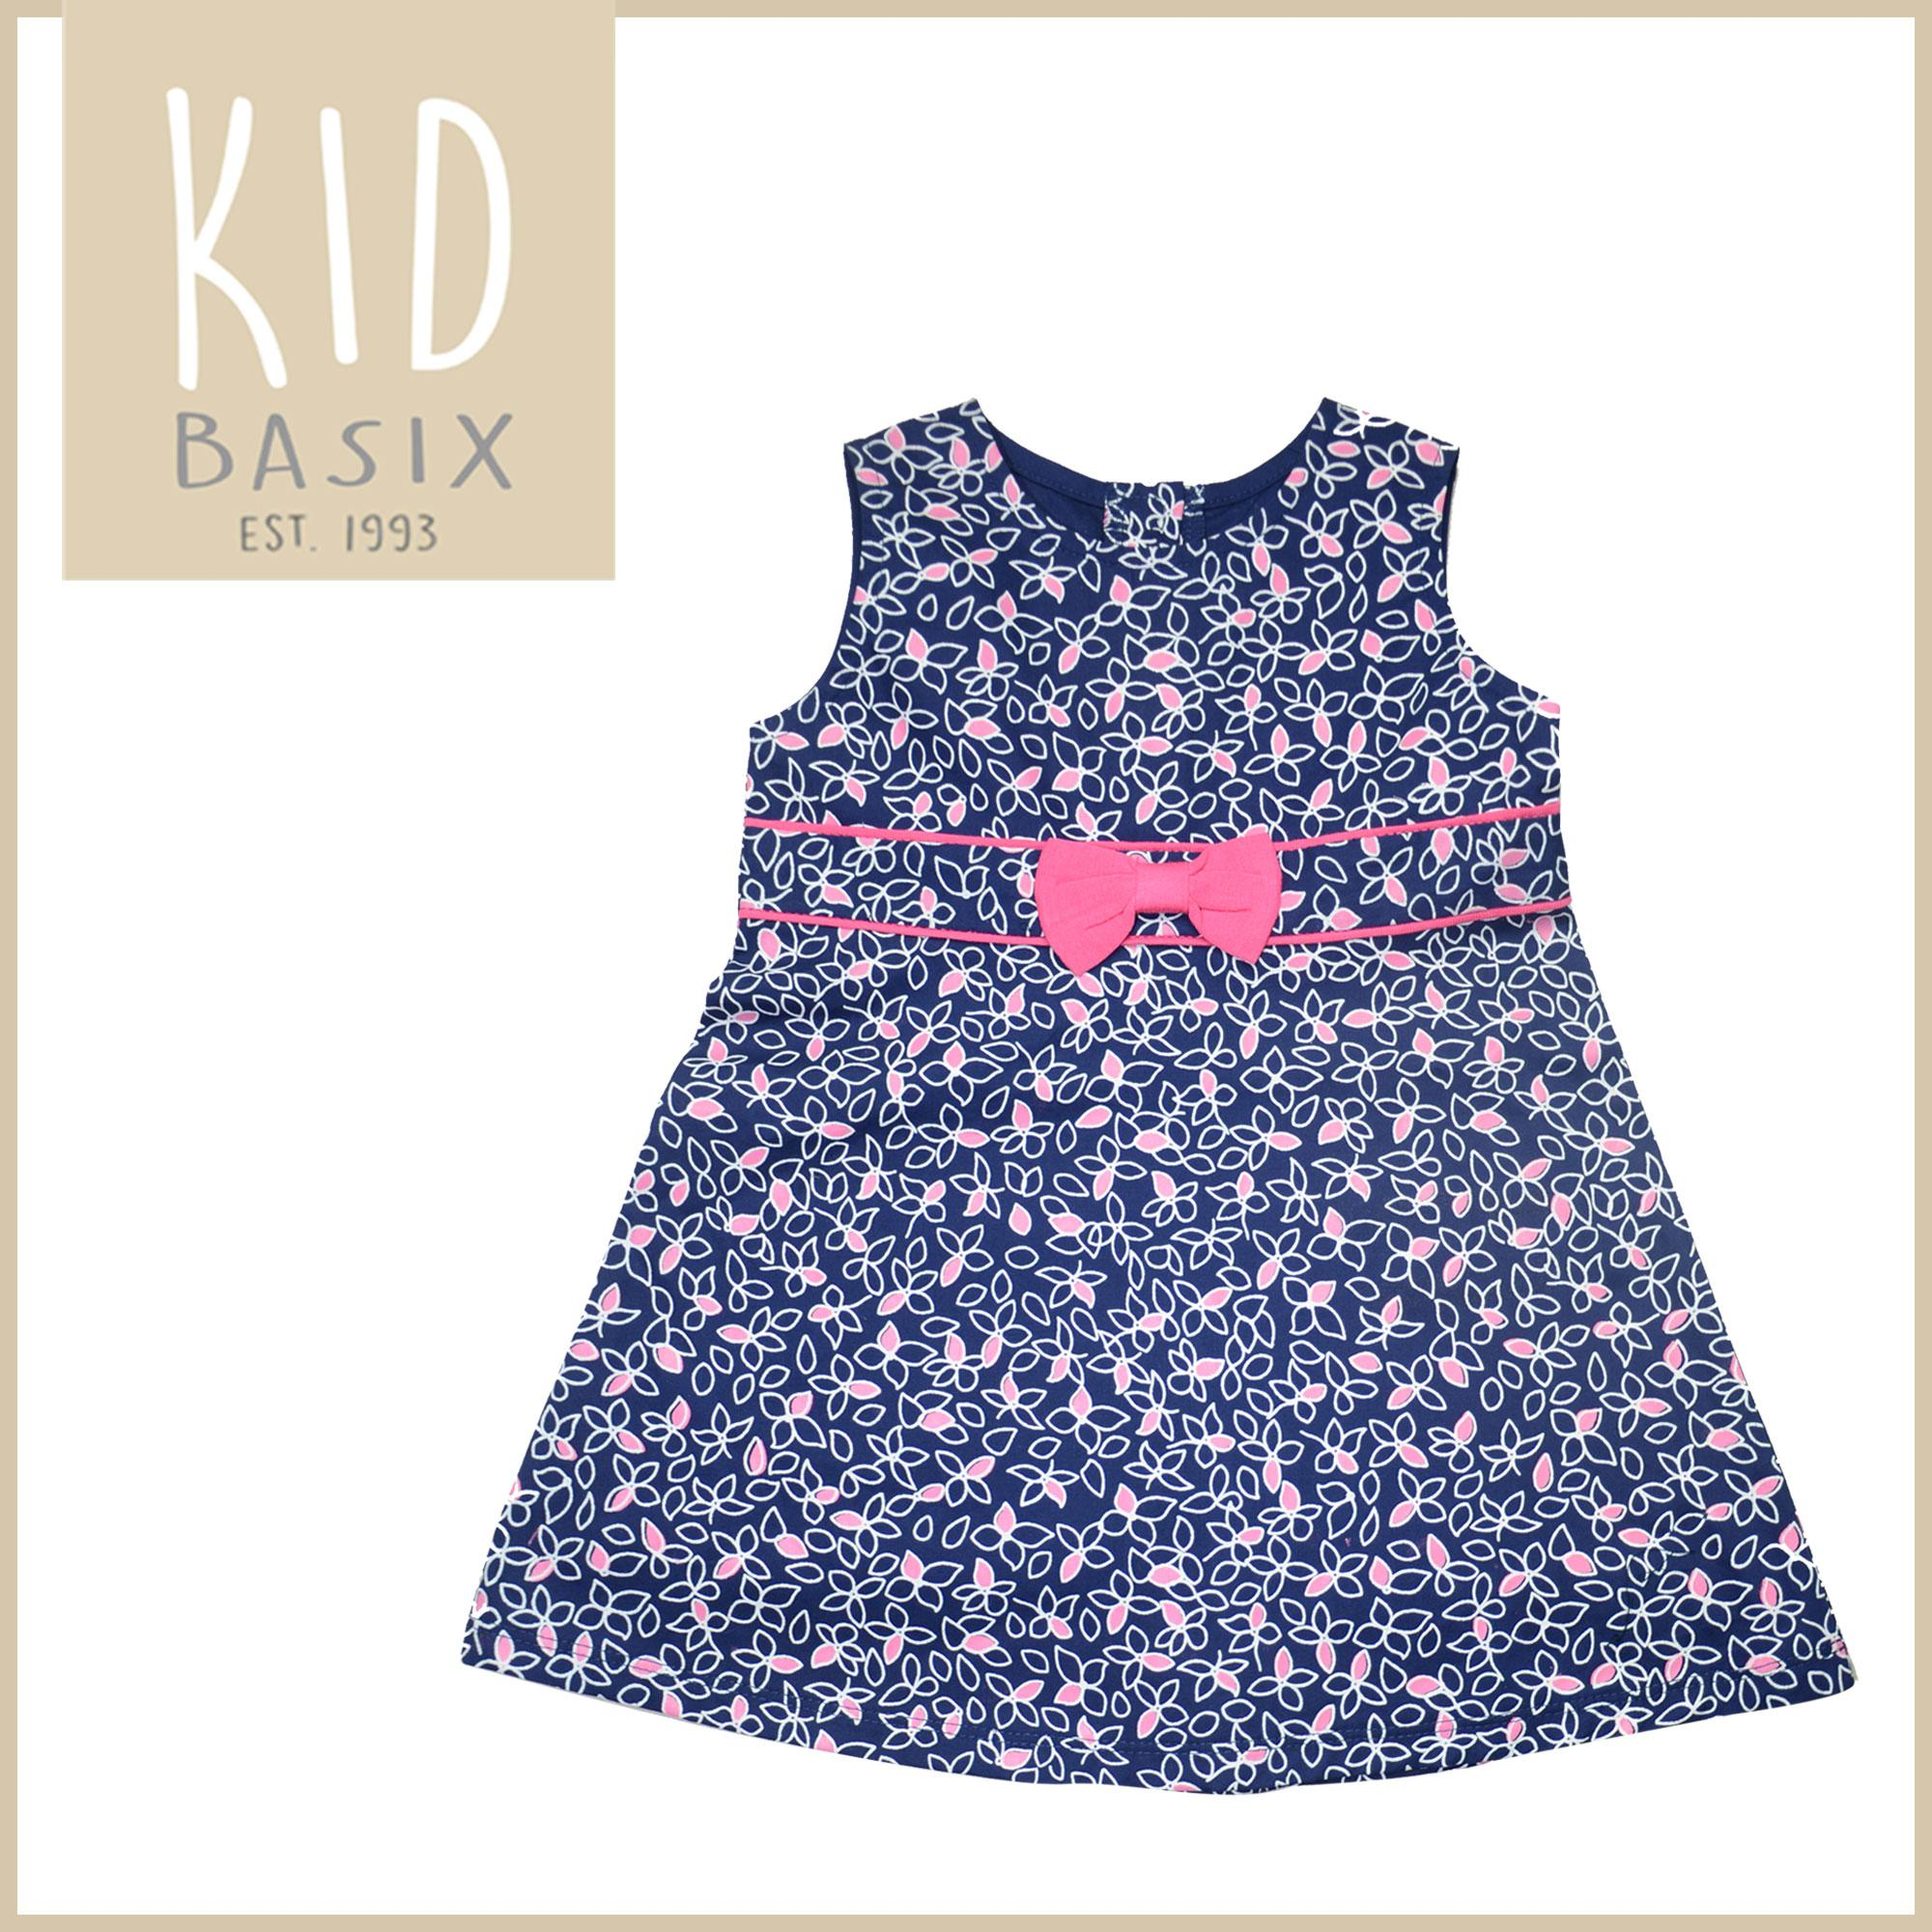 c33df7ff9640 Kid Basix Kids Dress for Girls White and Pink printed Petals with Pink  Ribbon (Code